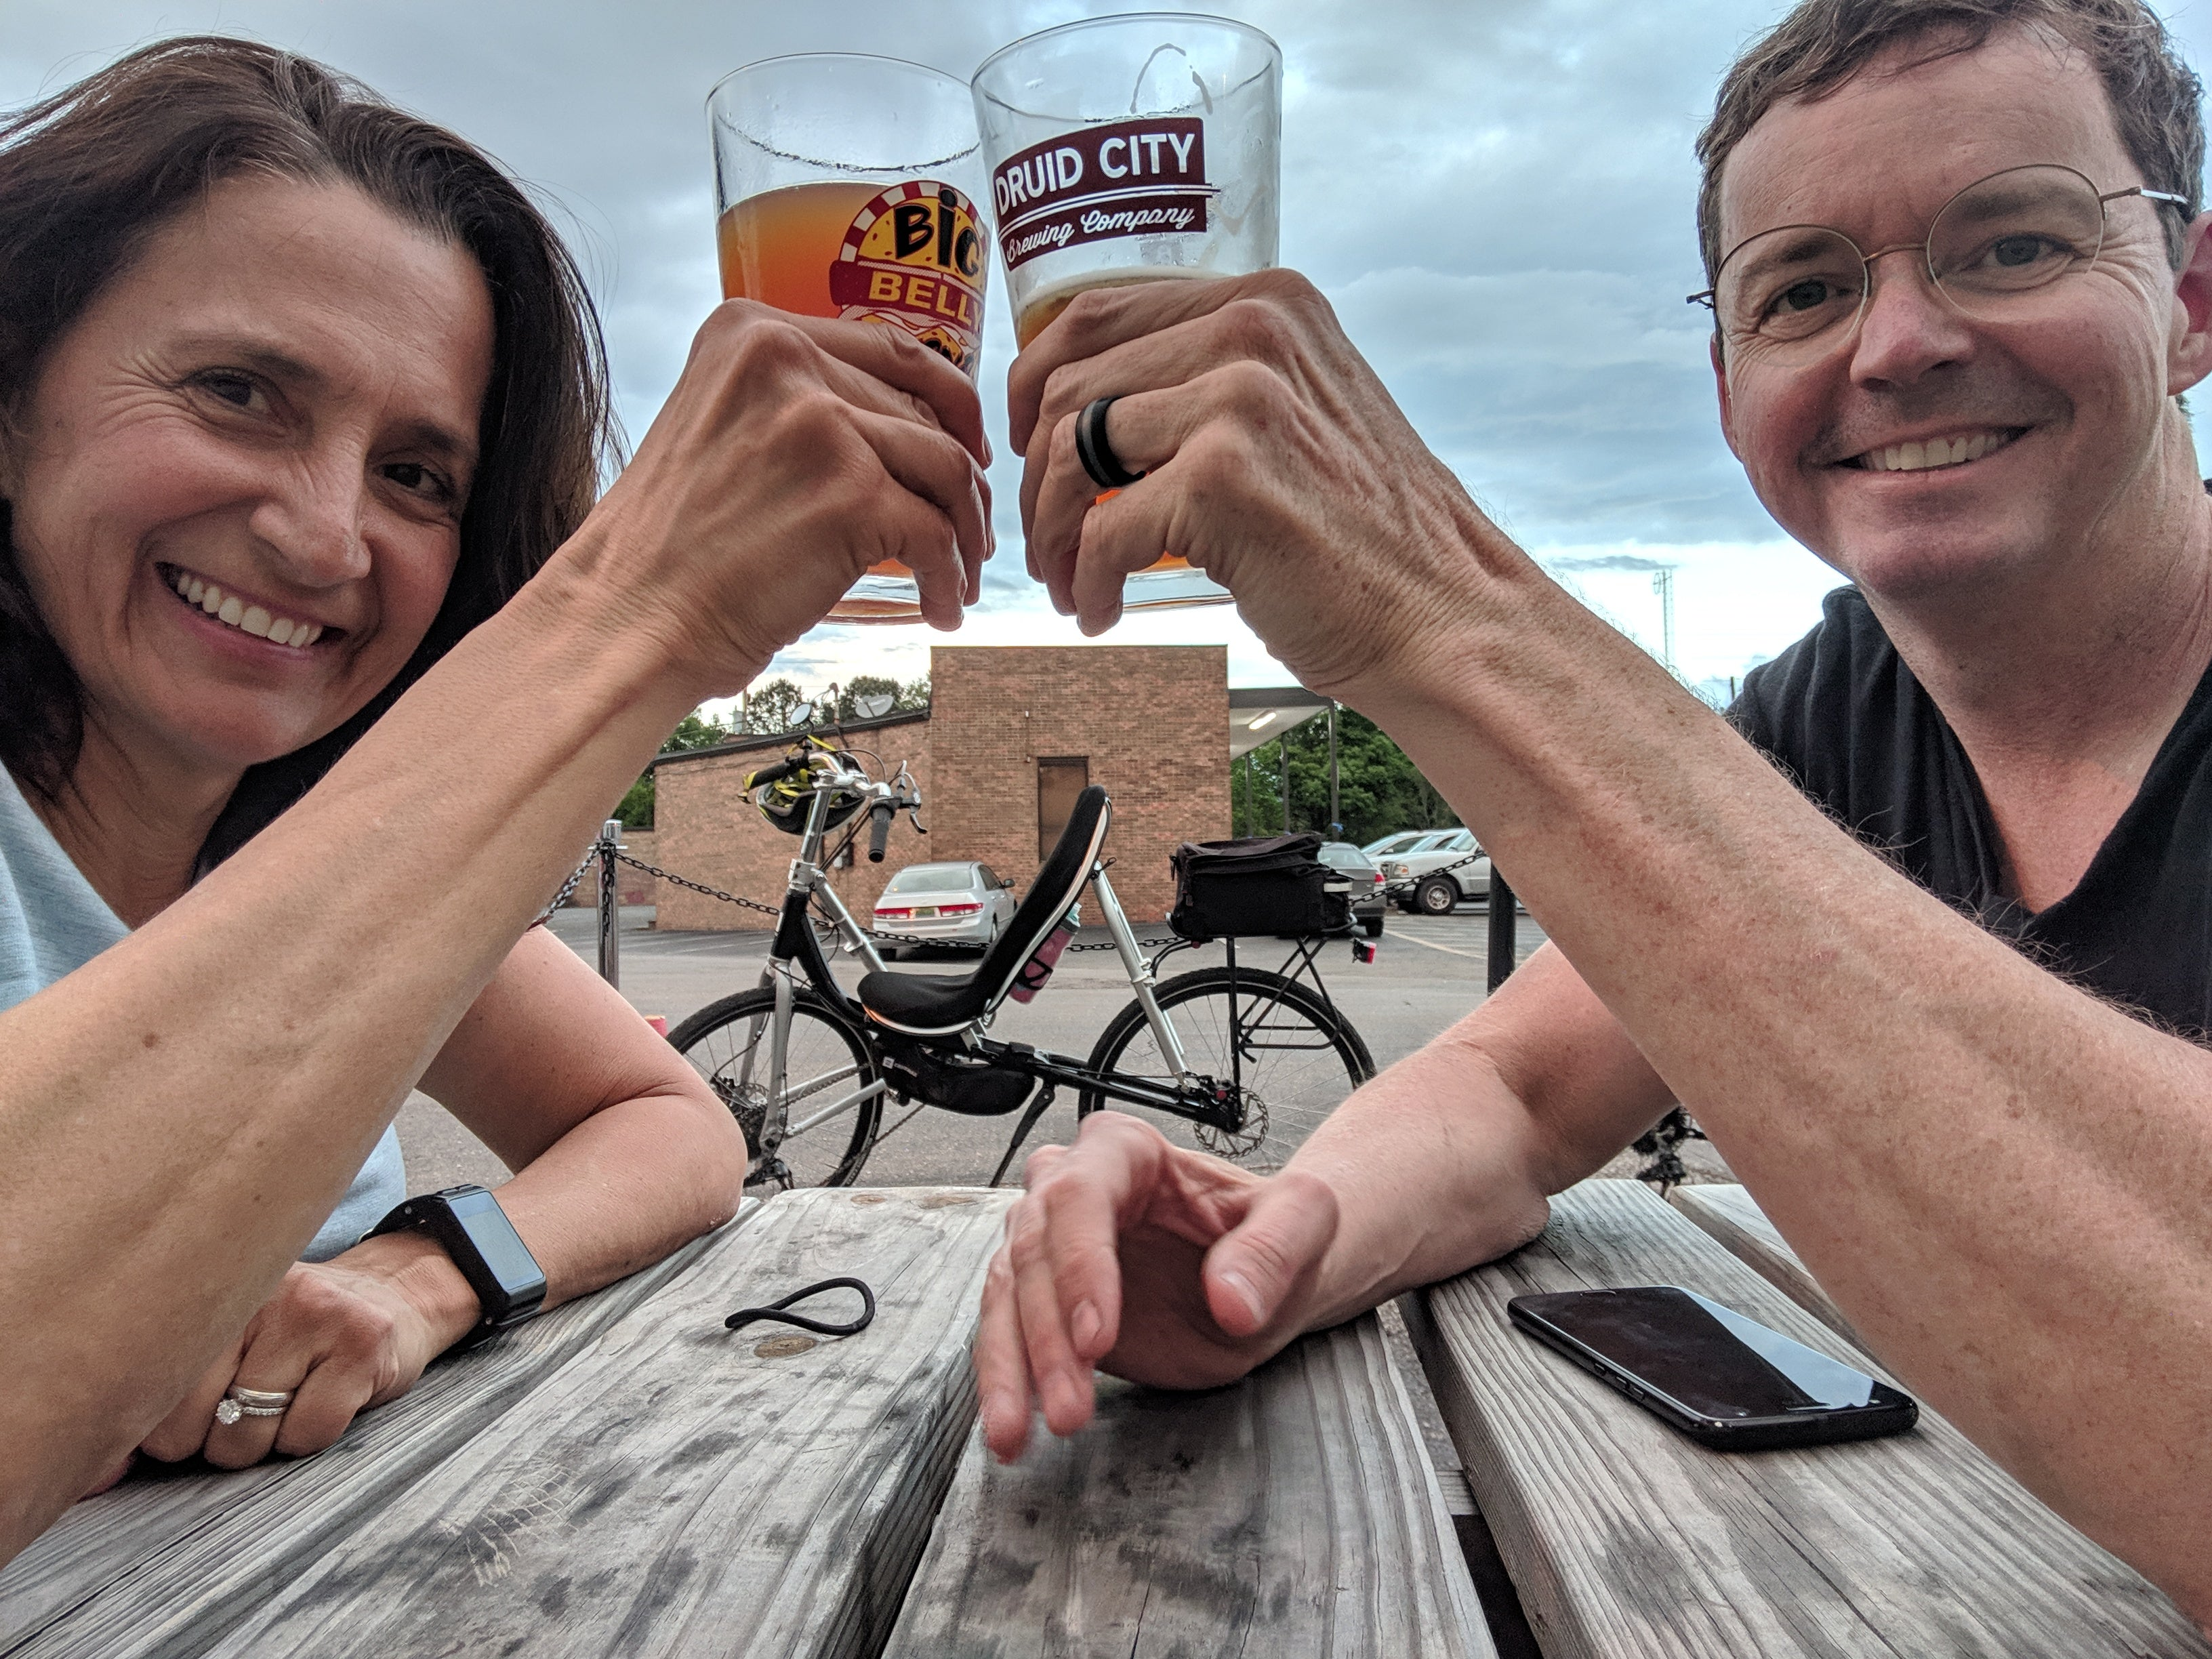 Breweries in Alabama by bike